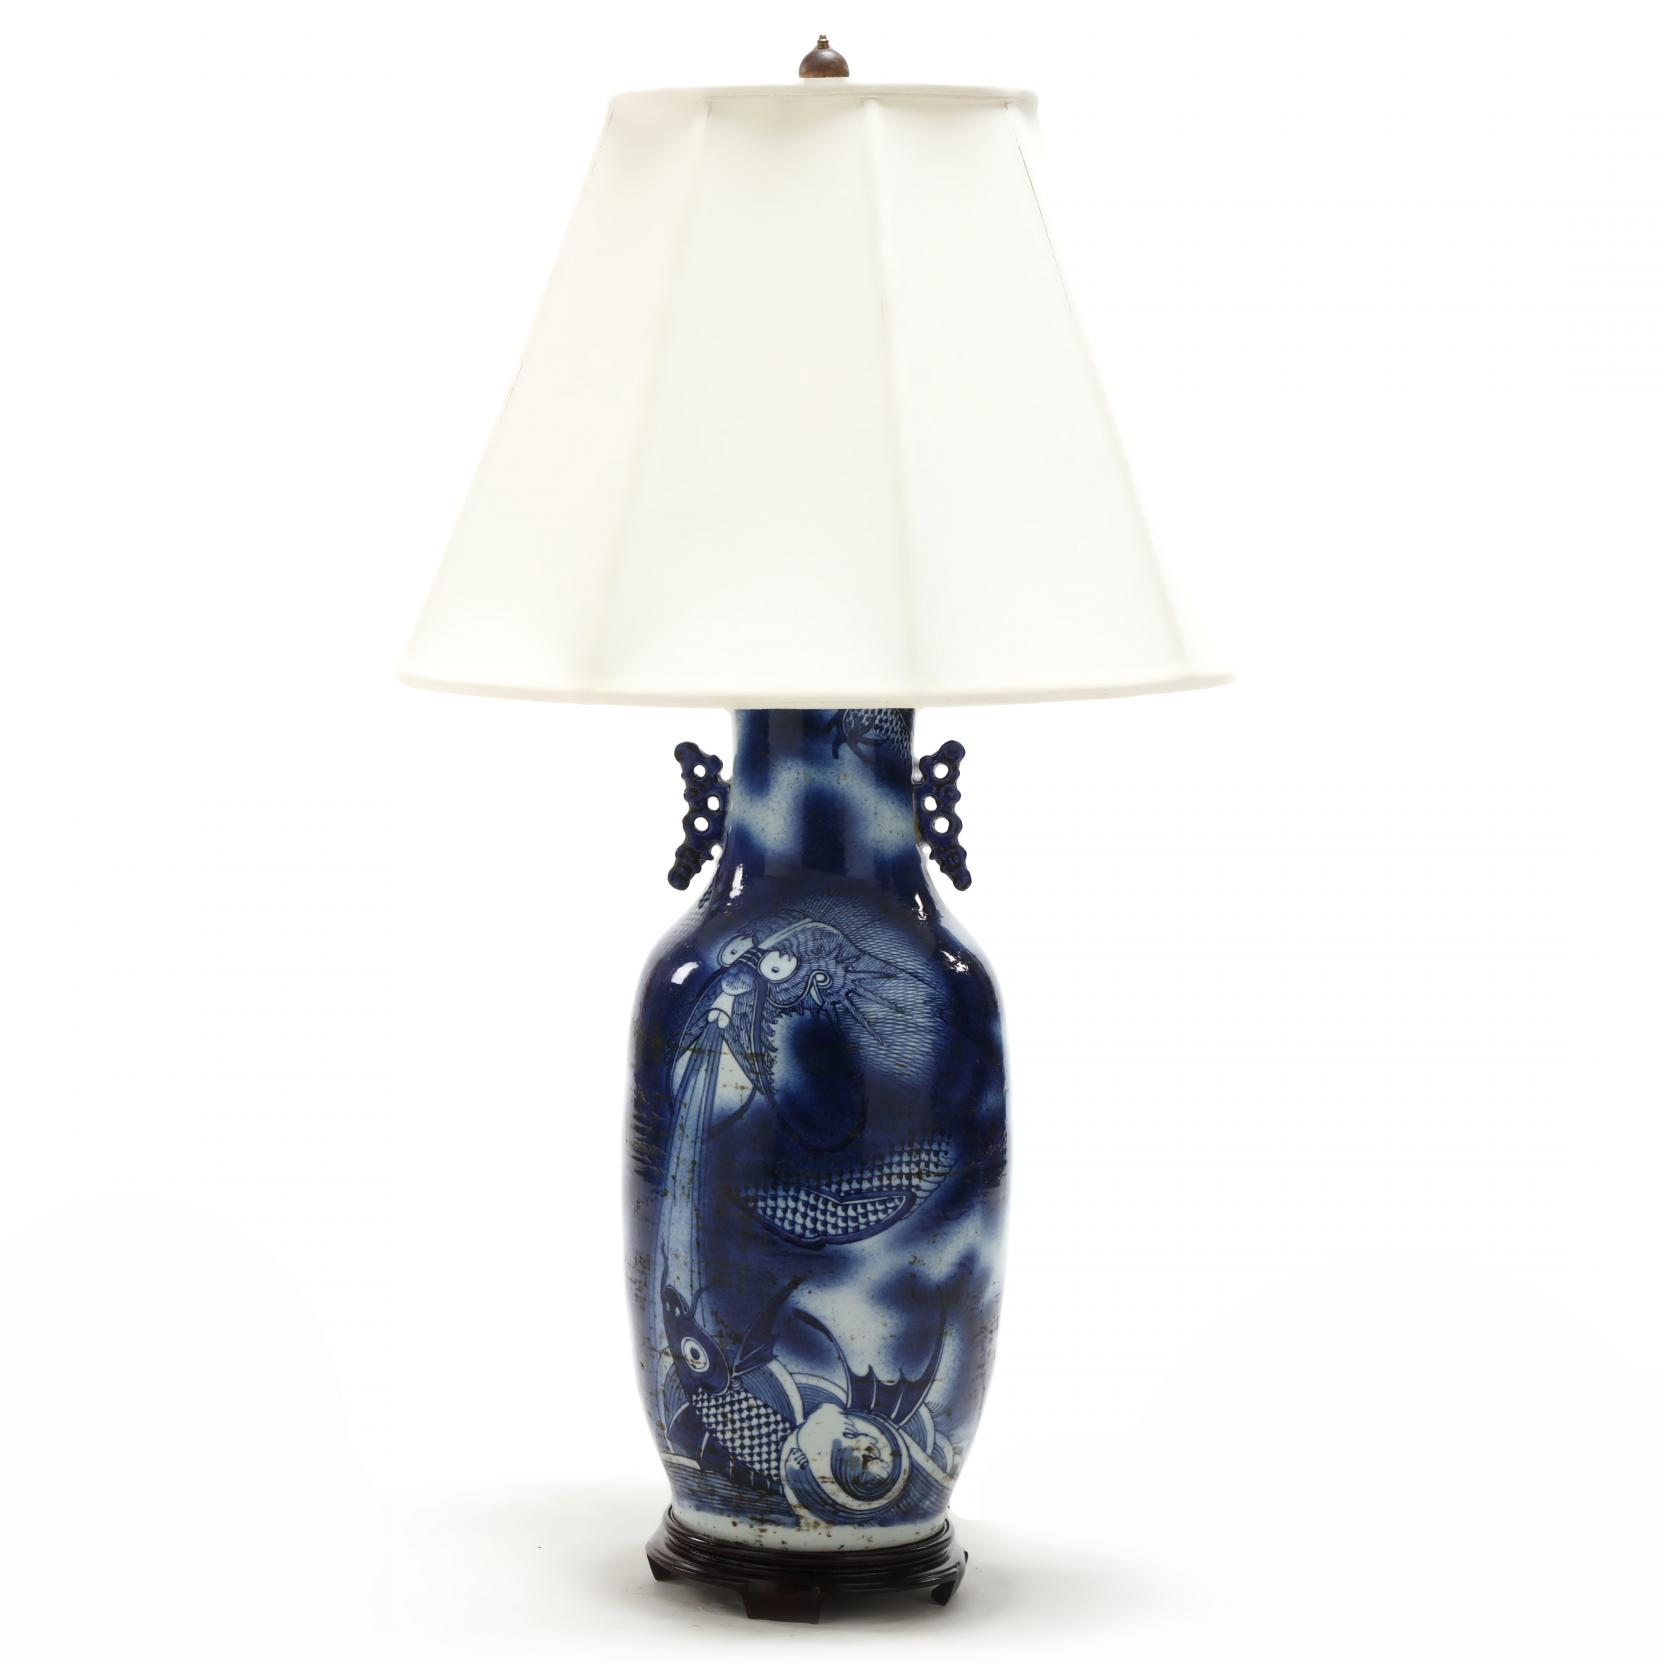 a-blue-and-white-vase-with-dragon-and-koi-fitted-as-lamp